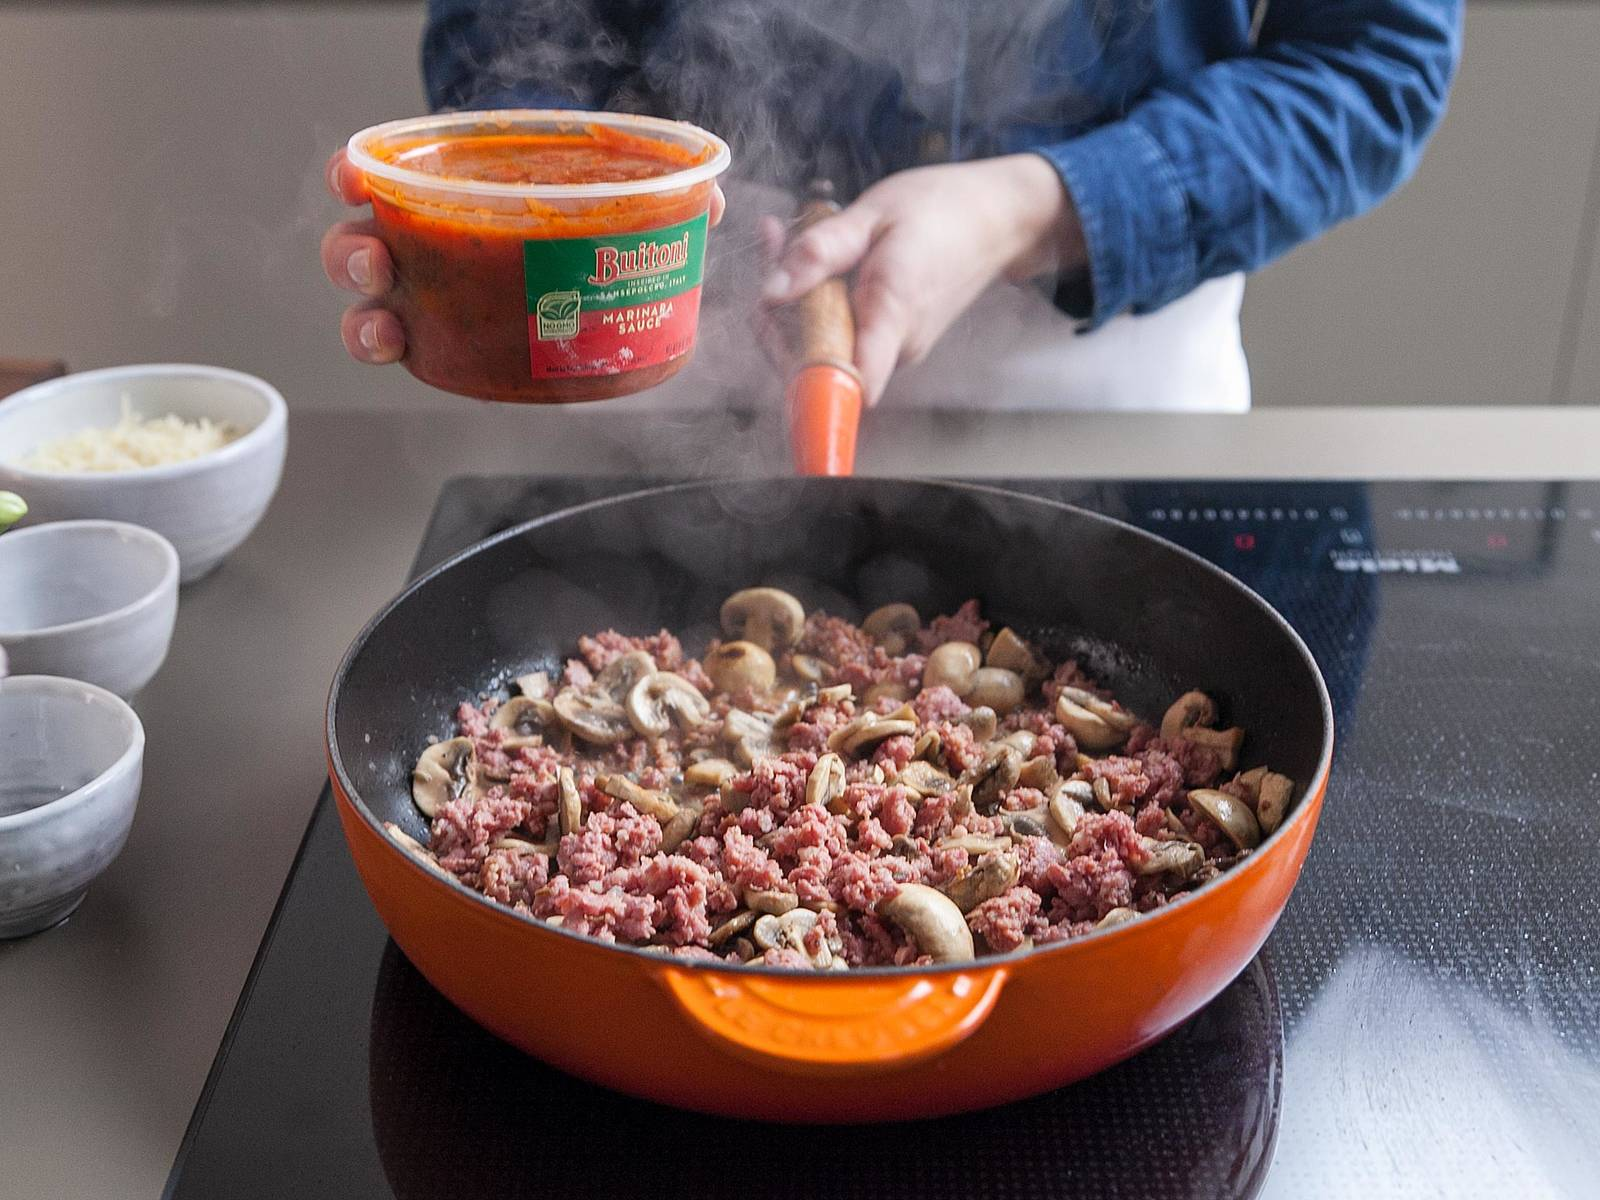 Add wine, stirring to loosen browned bits from bottom of pan. Add tomato sauce and cook, stirring occasionally, until heated through. Remove from heat.